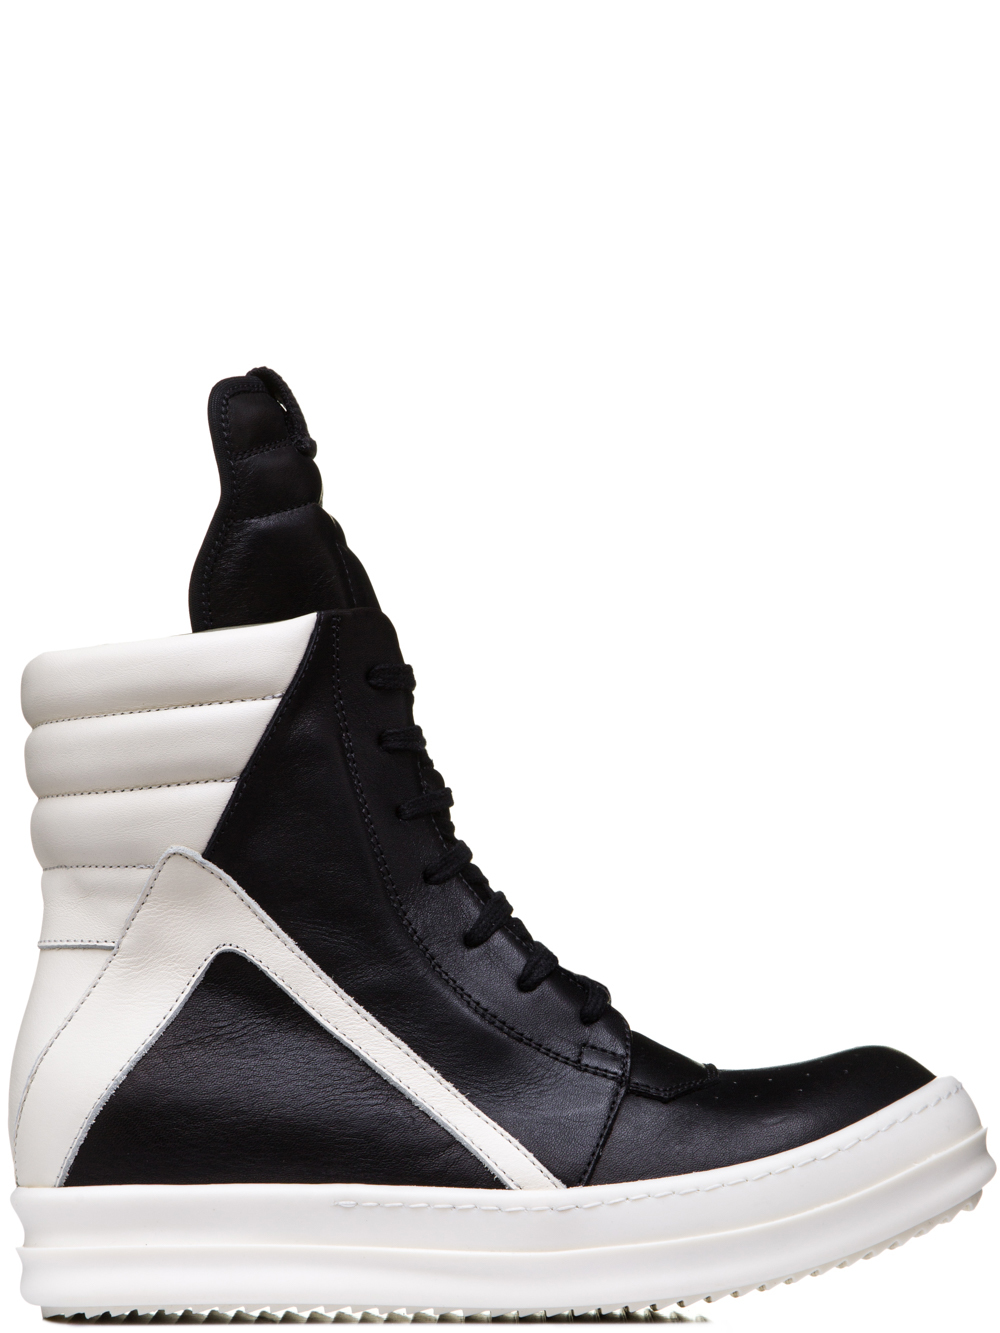 RICK OWENS SS19 BABEL GEOBASKETS IN BLACK CALF LEATHER